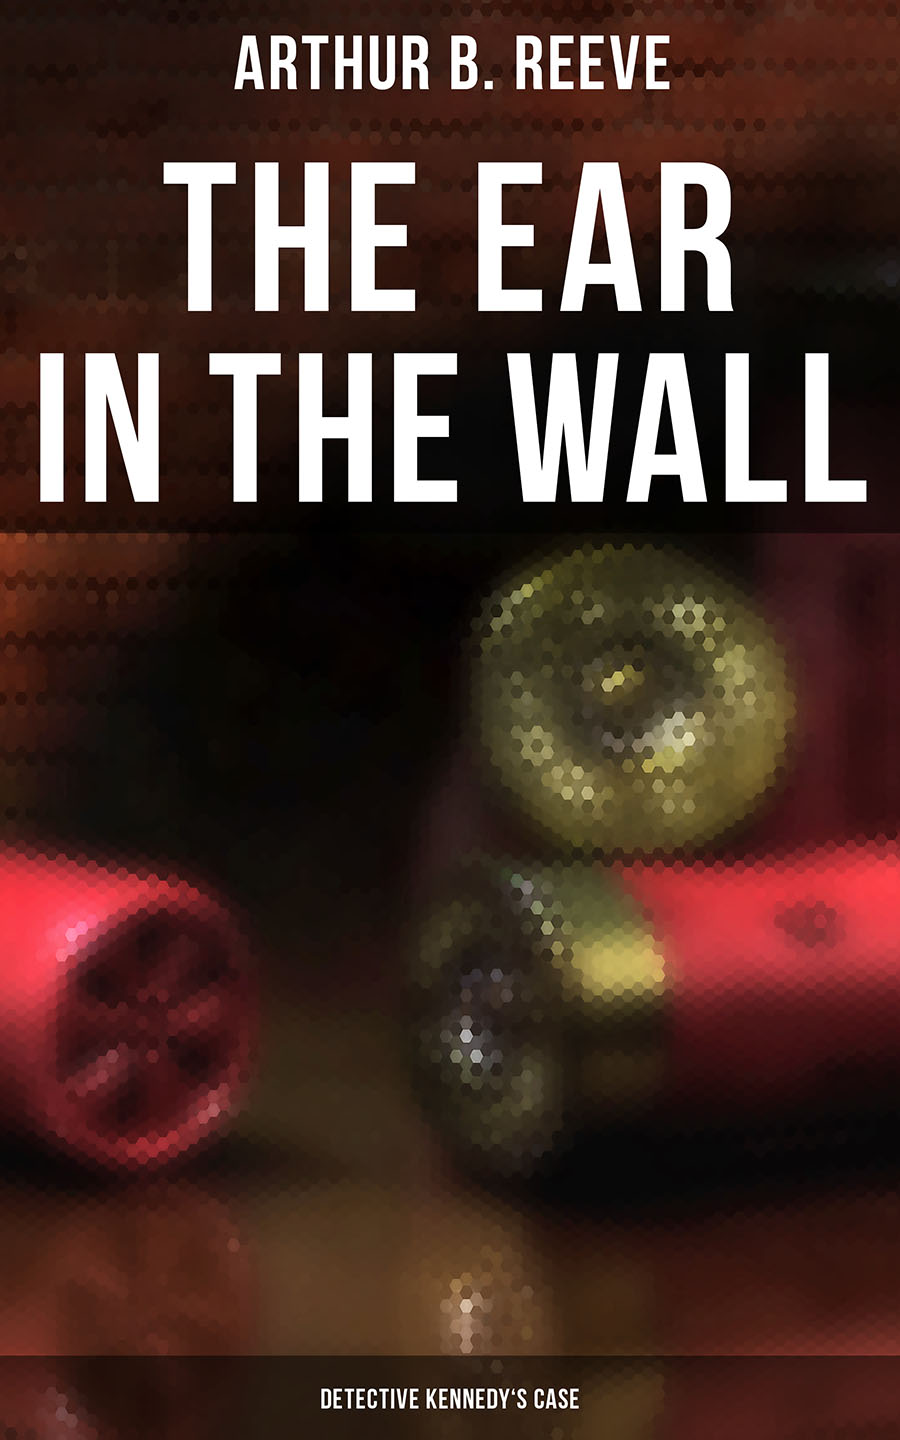 The Ear in the Wall: Detective Kennedy's Case